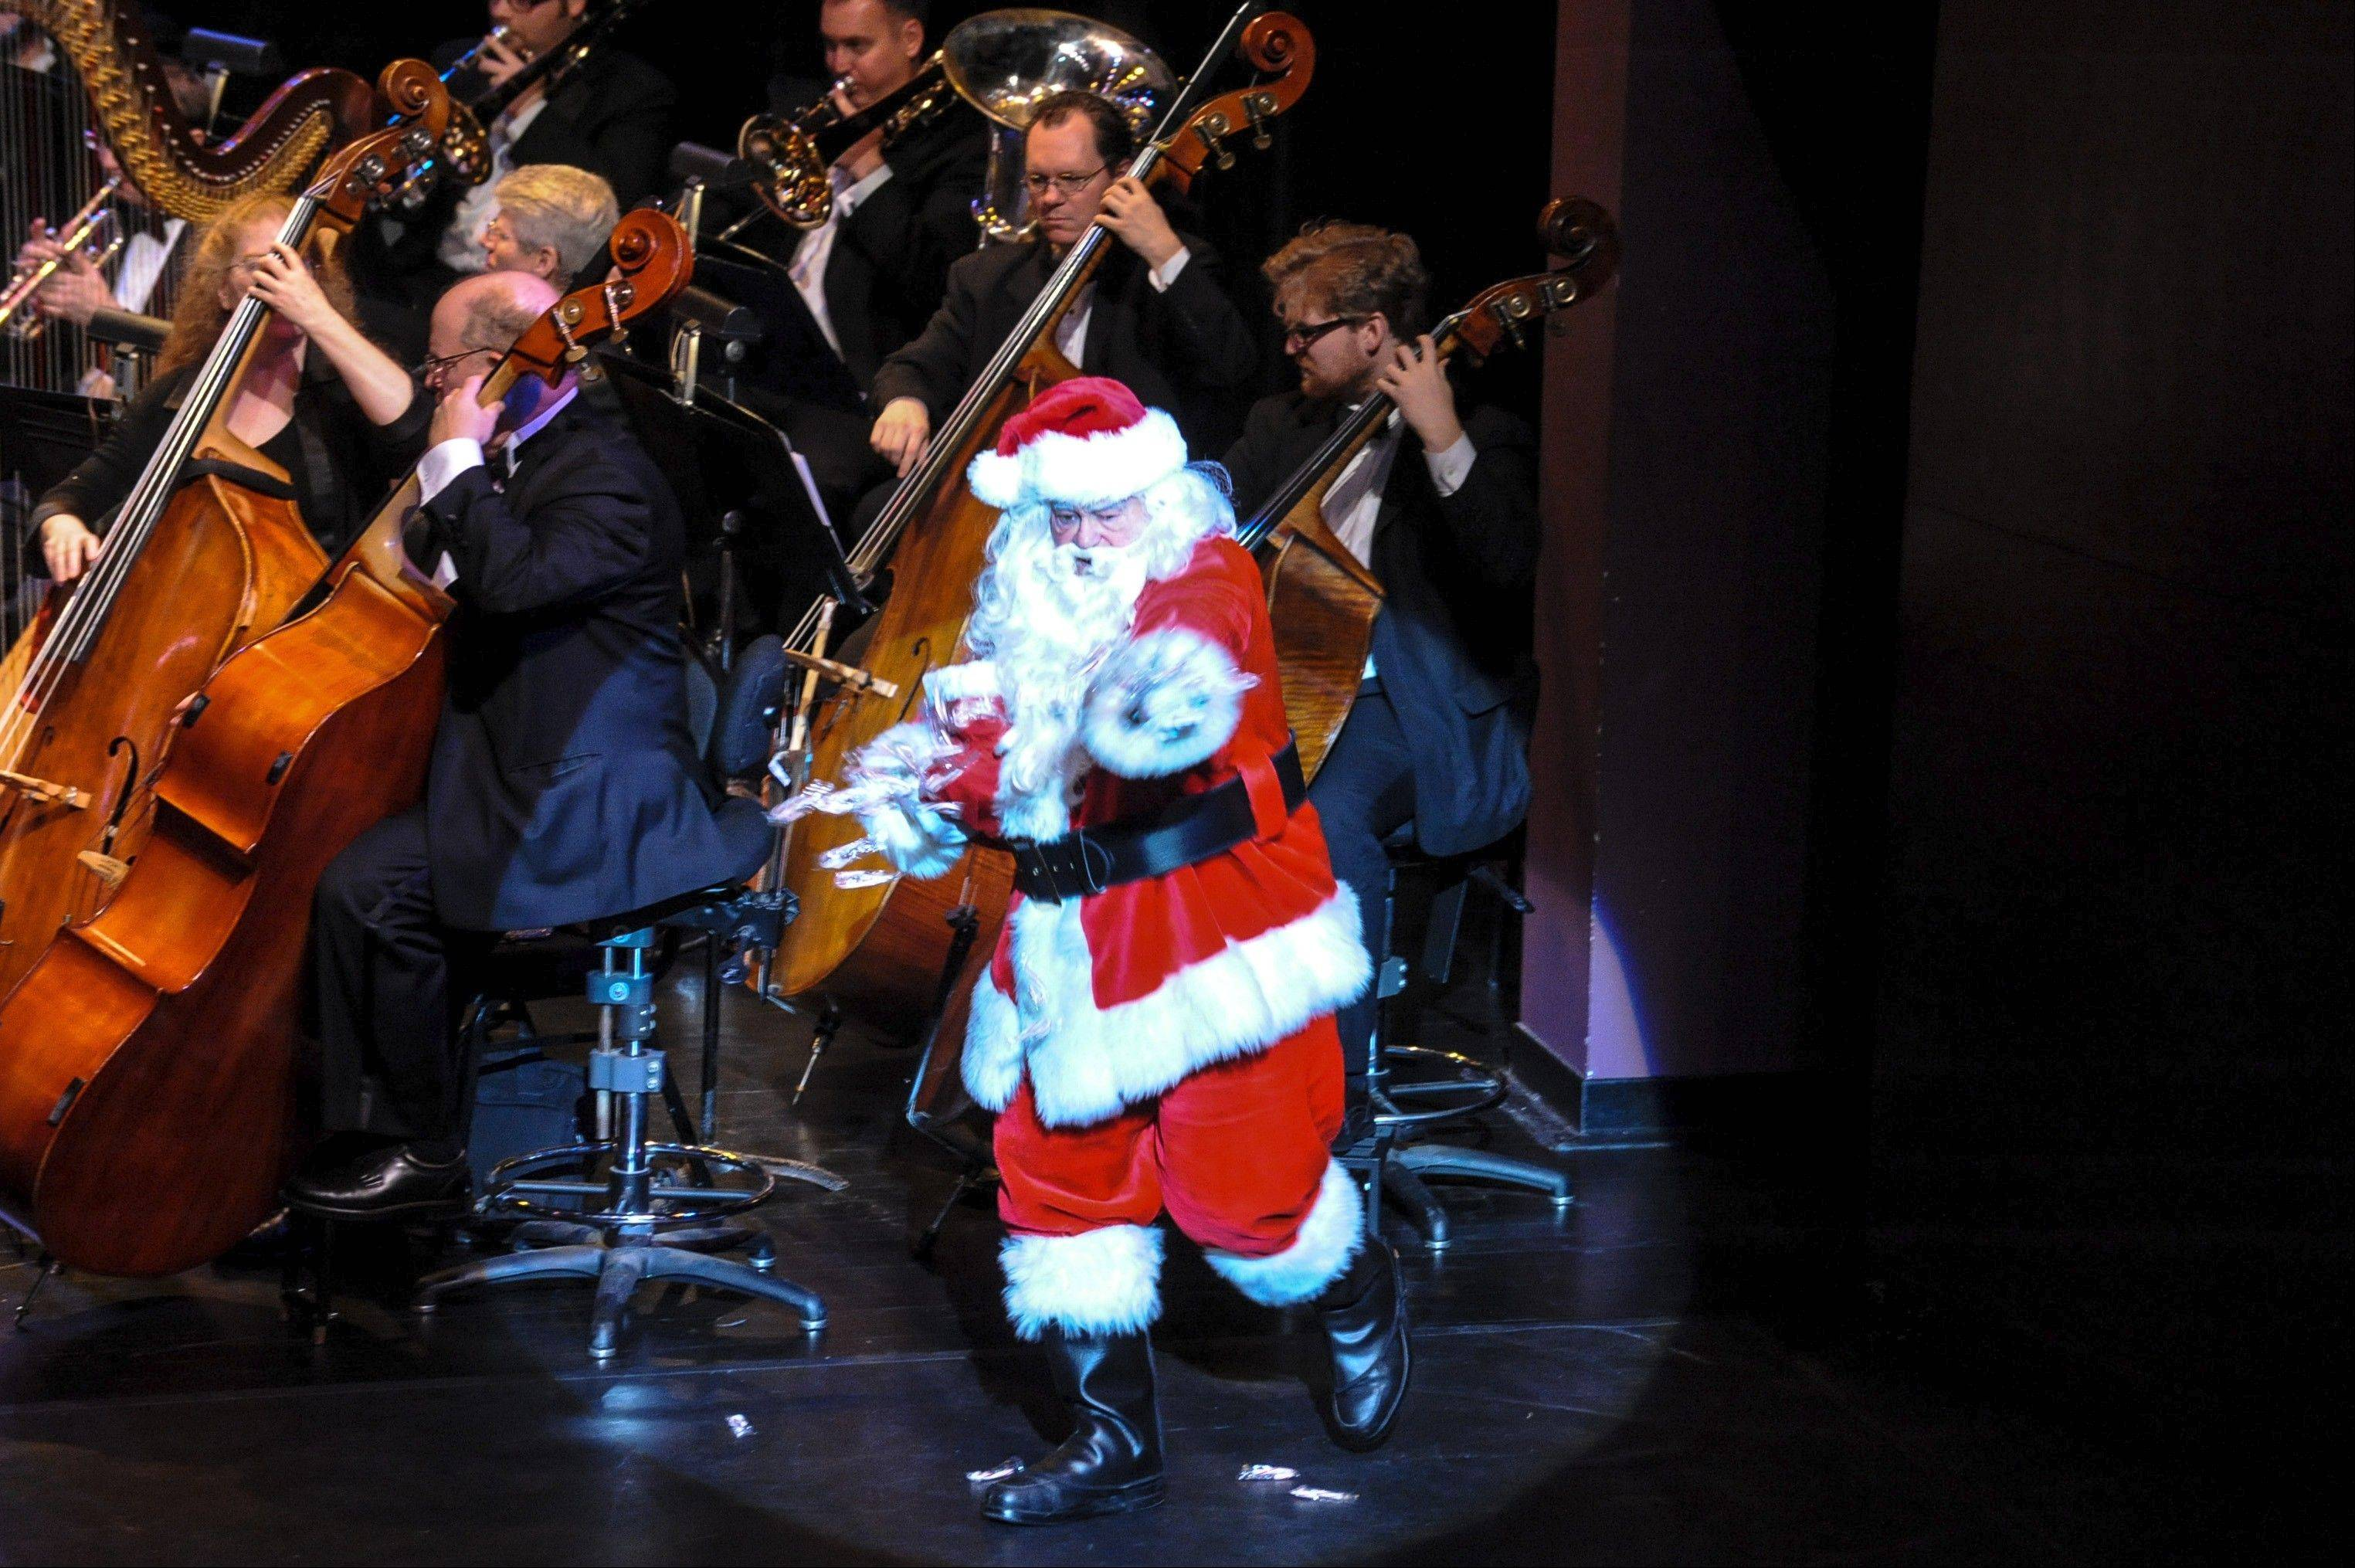 A special visitor from the North Pole is expected to make an appearance at the ESO's holiday concerts this weekend.